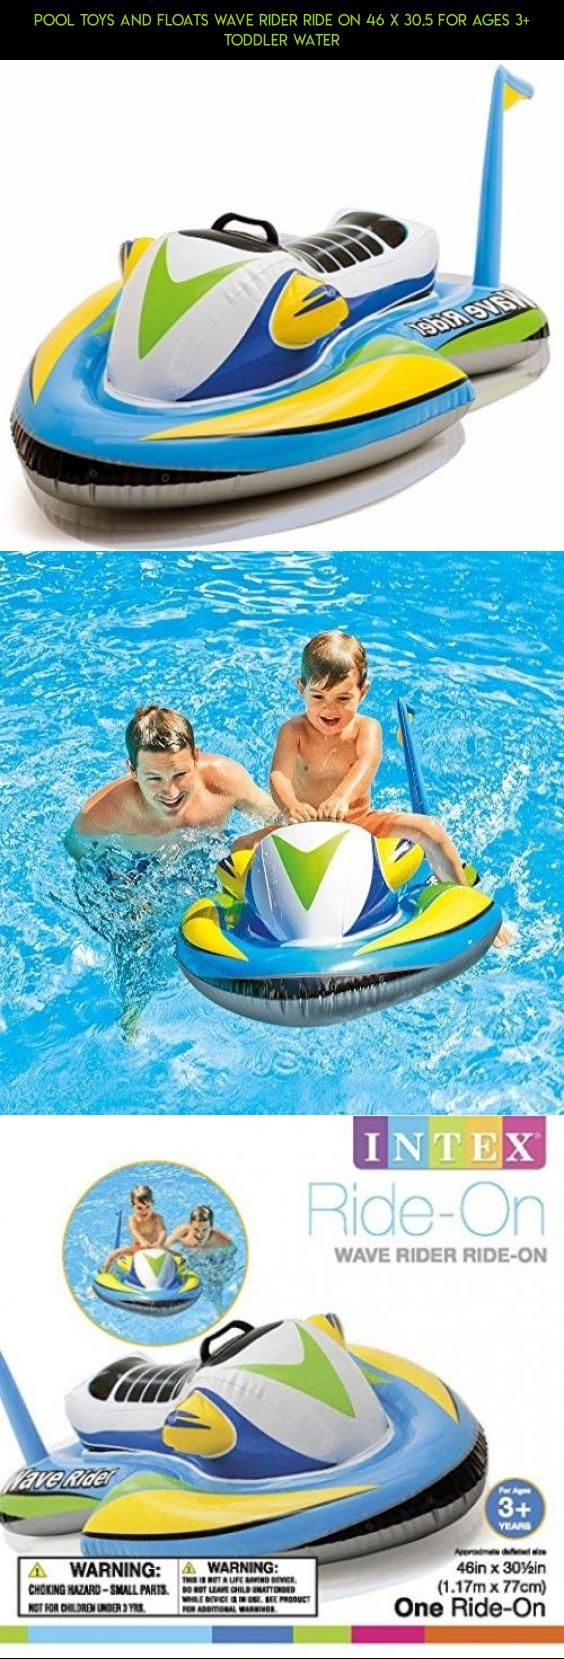 Pool Toys and Floats Wave Rider Ride On 46 X 30.5 for Ages 3+ Toddler Water #drone #for #gadgets #technology #shopping #products #toys #kit #parts #toddlers #camera #plans #racing #fpv #tech #pools